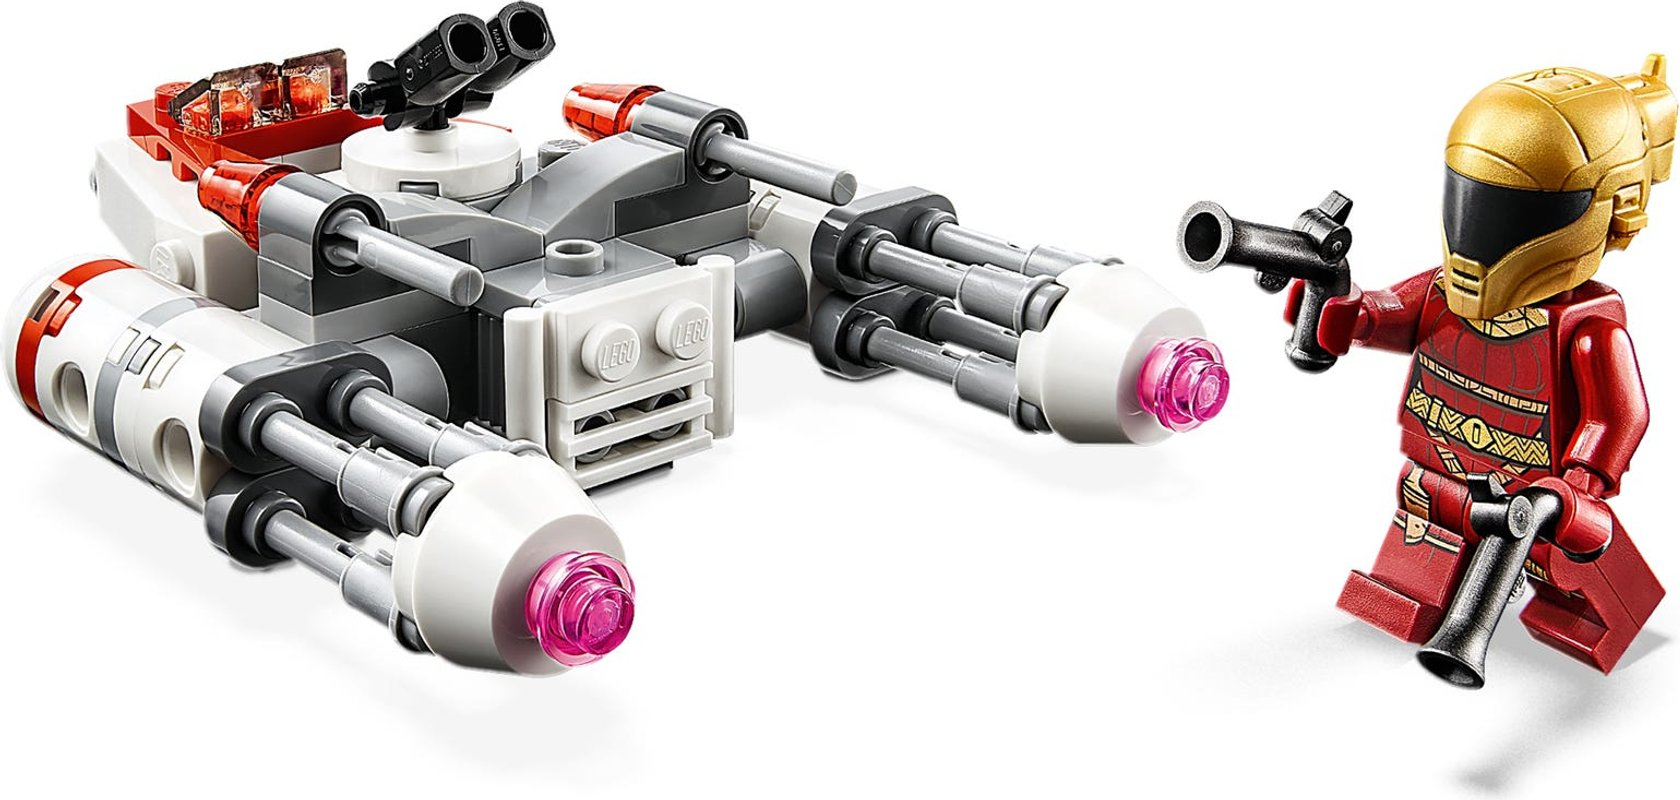 Resistance Y-wing™ Microfighter components